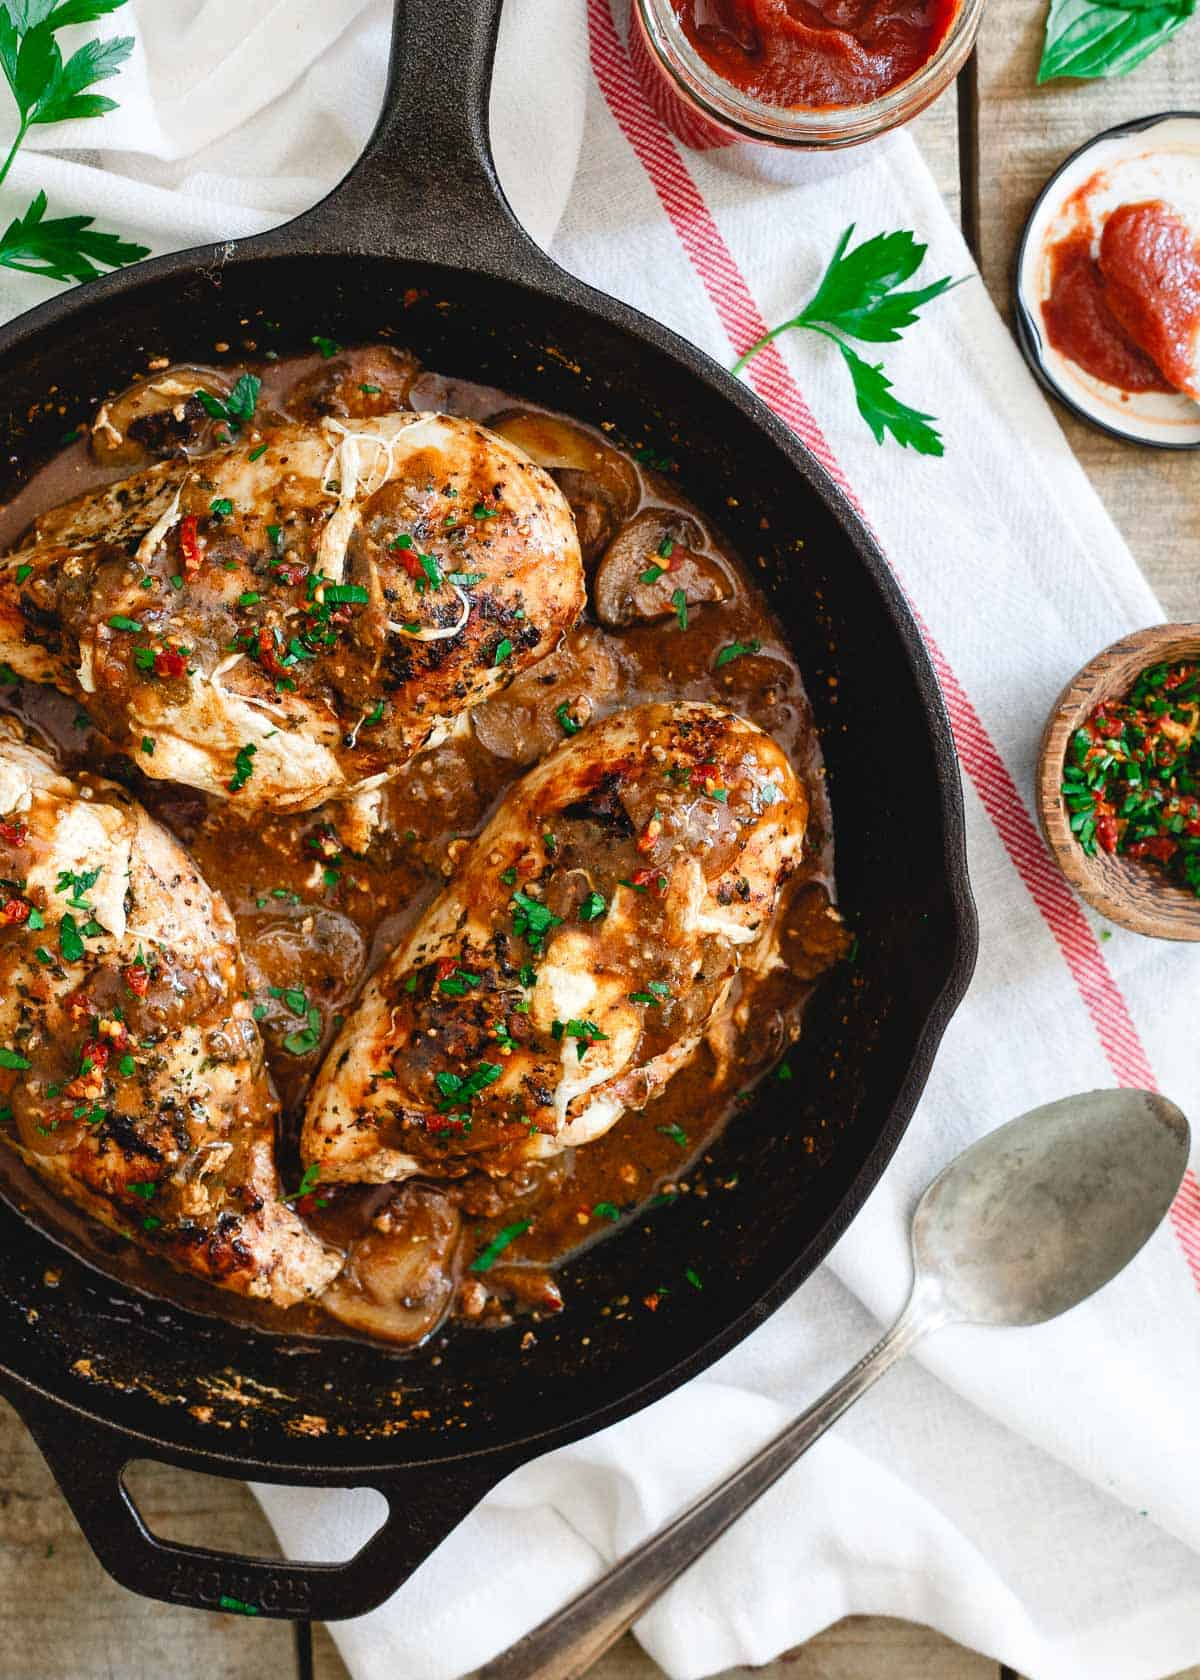 This stuffed chicken marsala takes the classic Italian dish to a whole new level.